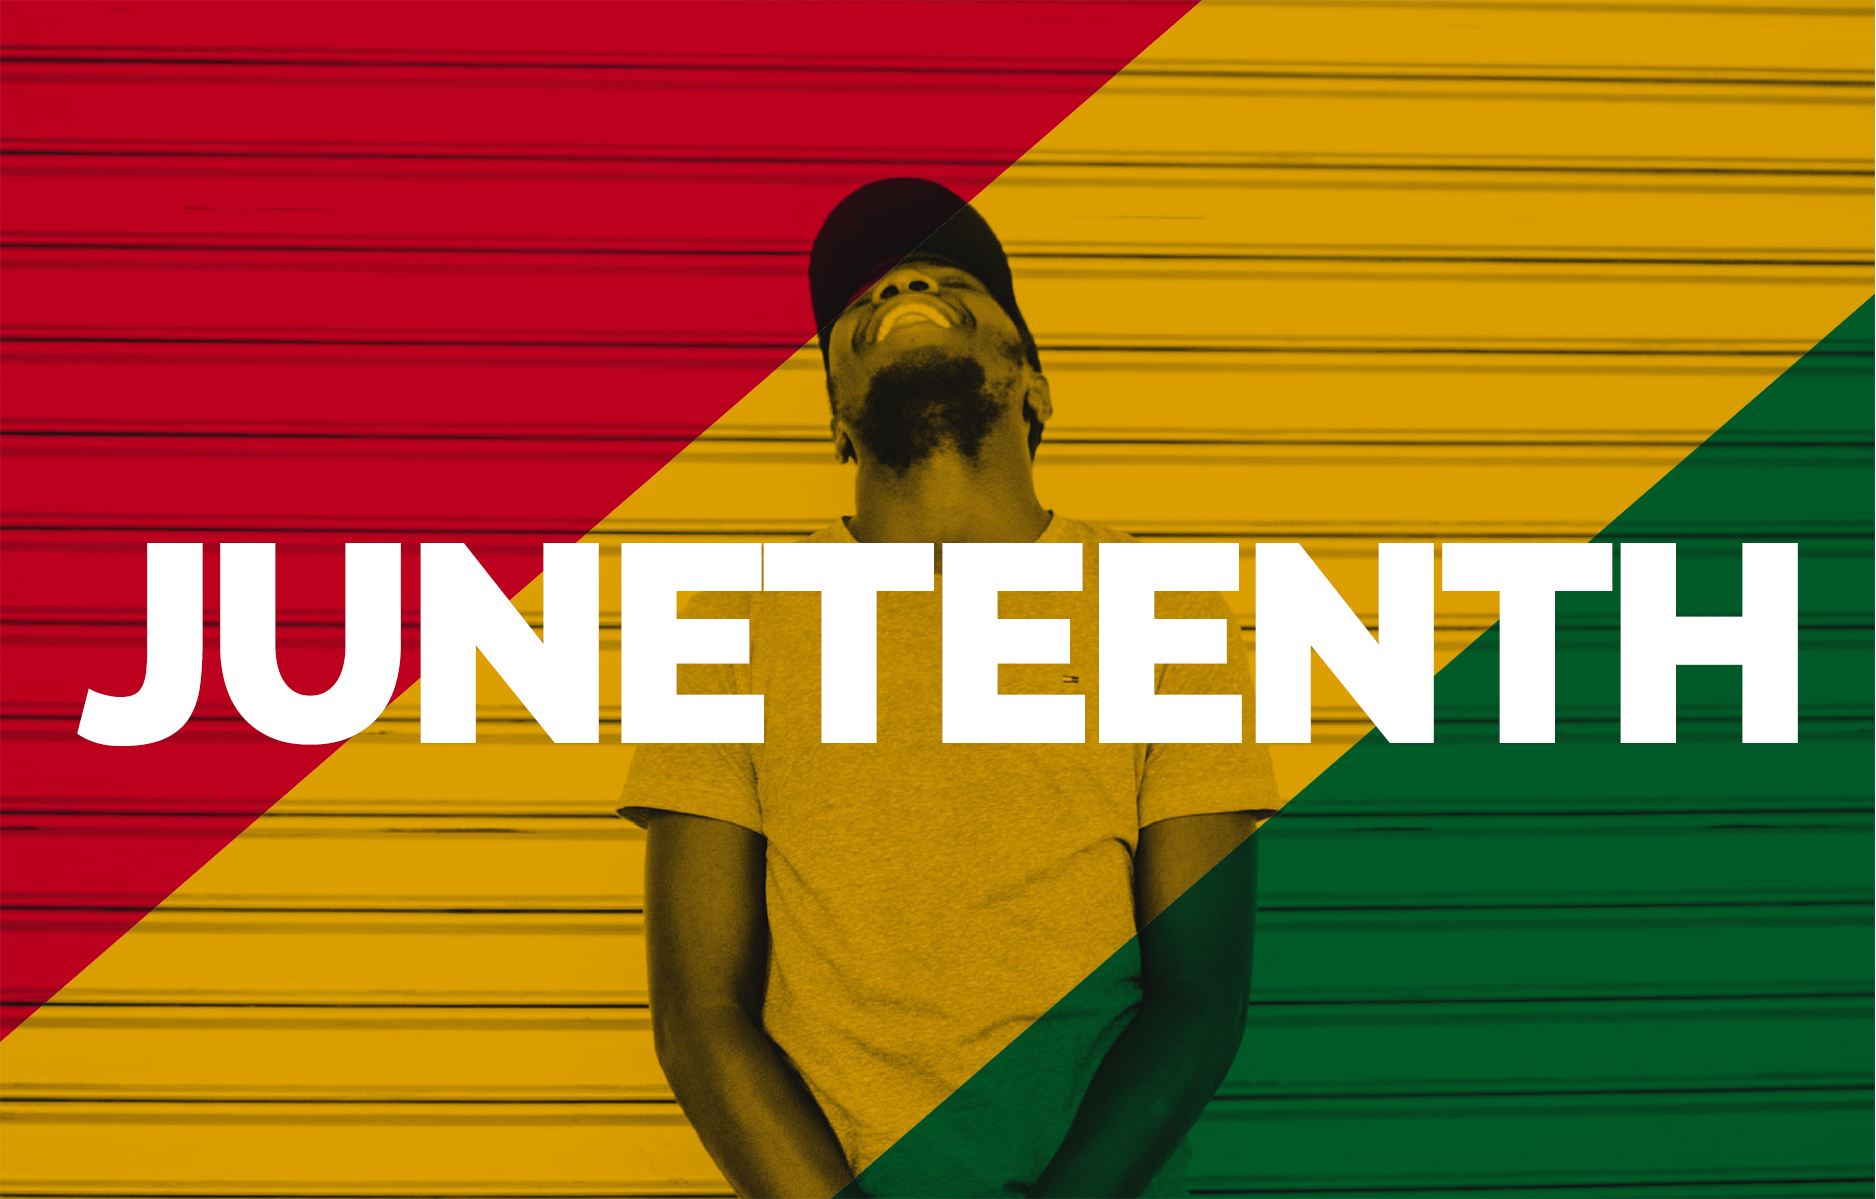 How Your Company Could Celebrate Juneteenth